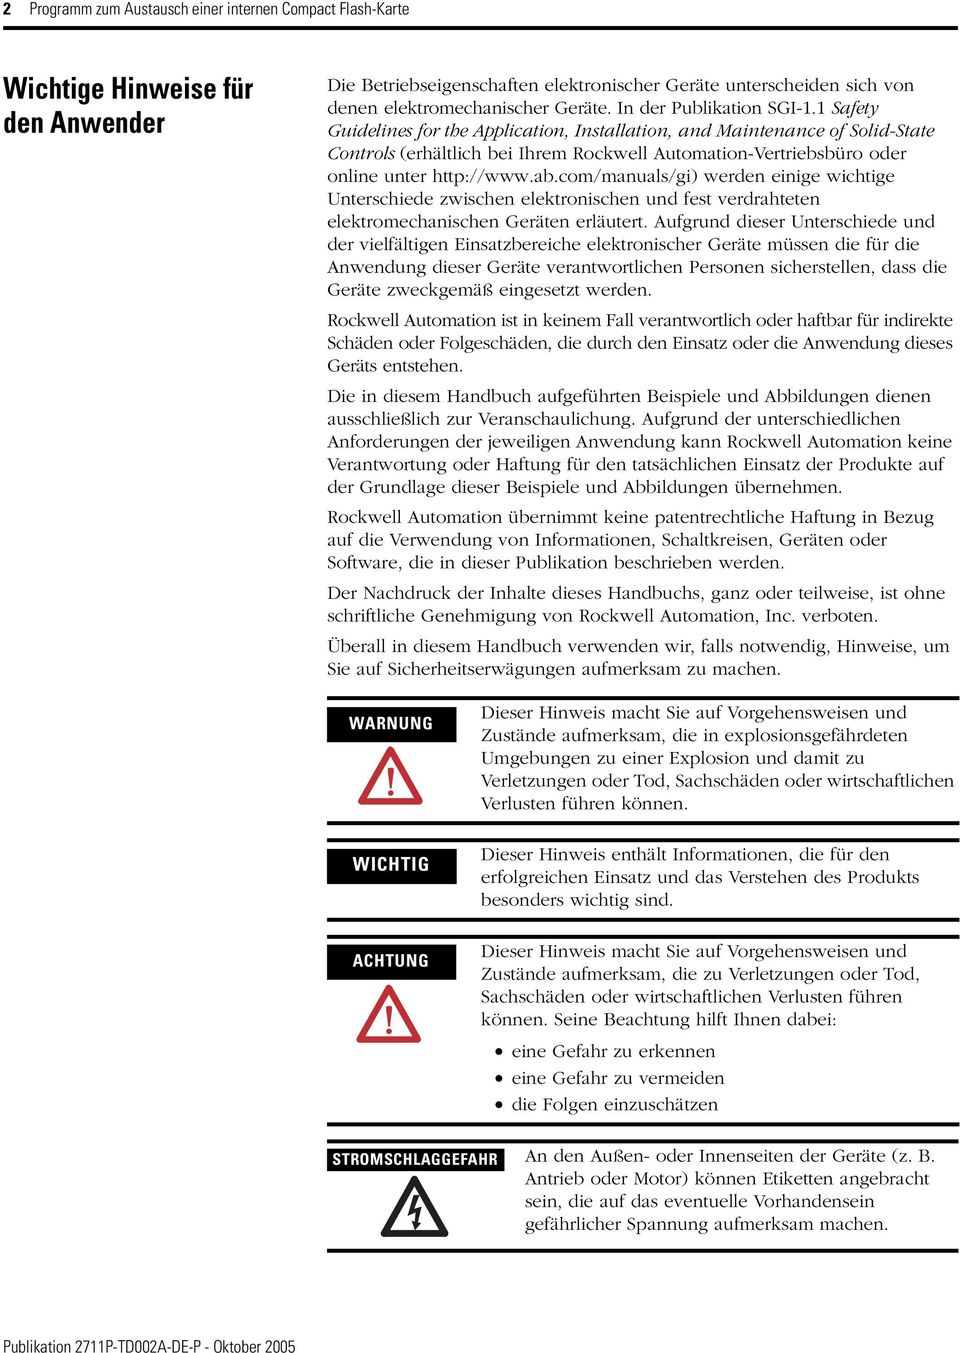 1 Safety Guidelines for the Application, Installation, and Maintenance of Solid-State Controls (erhältlich bei Ihrem Rockwell Automation-Vertriebsbüro oder online unter http://www.ab.